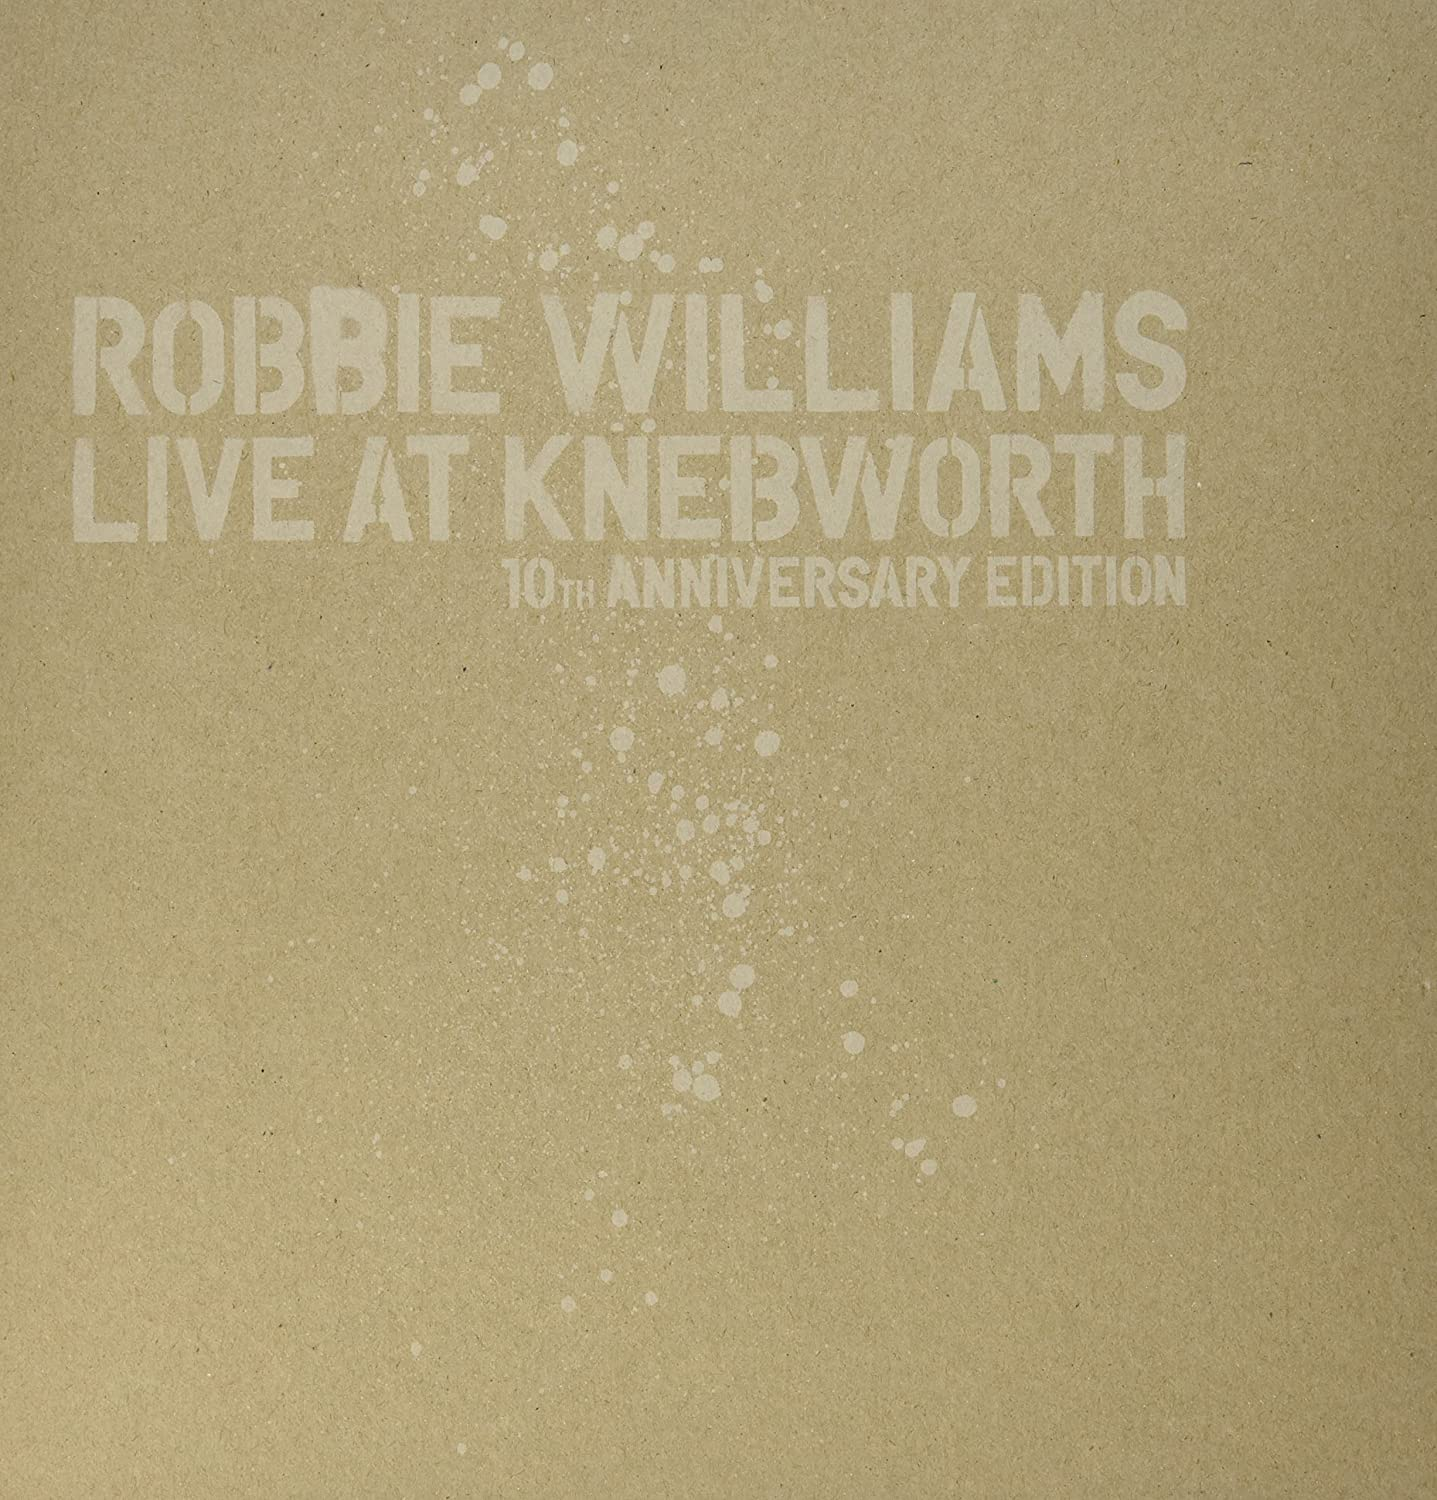 Live at Knebworth - 10th Anniversary Edition